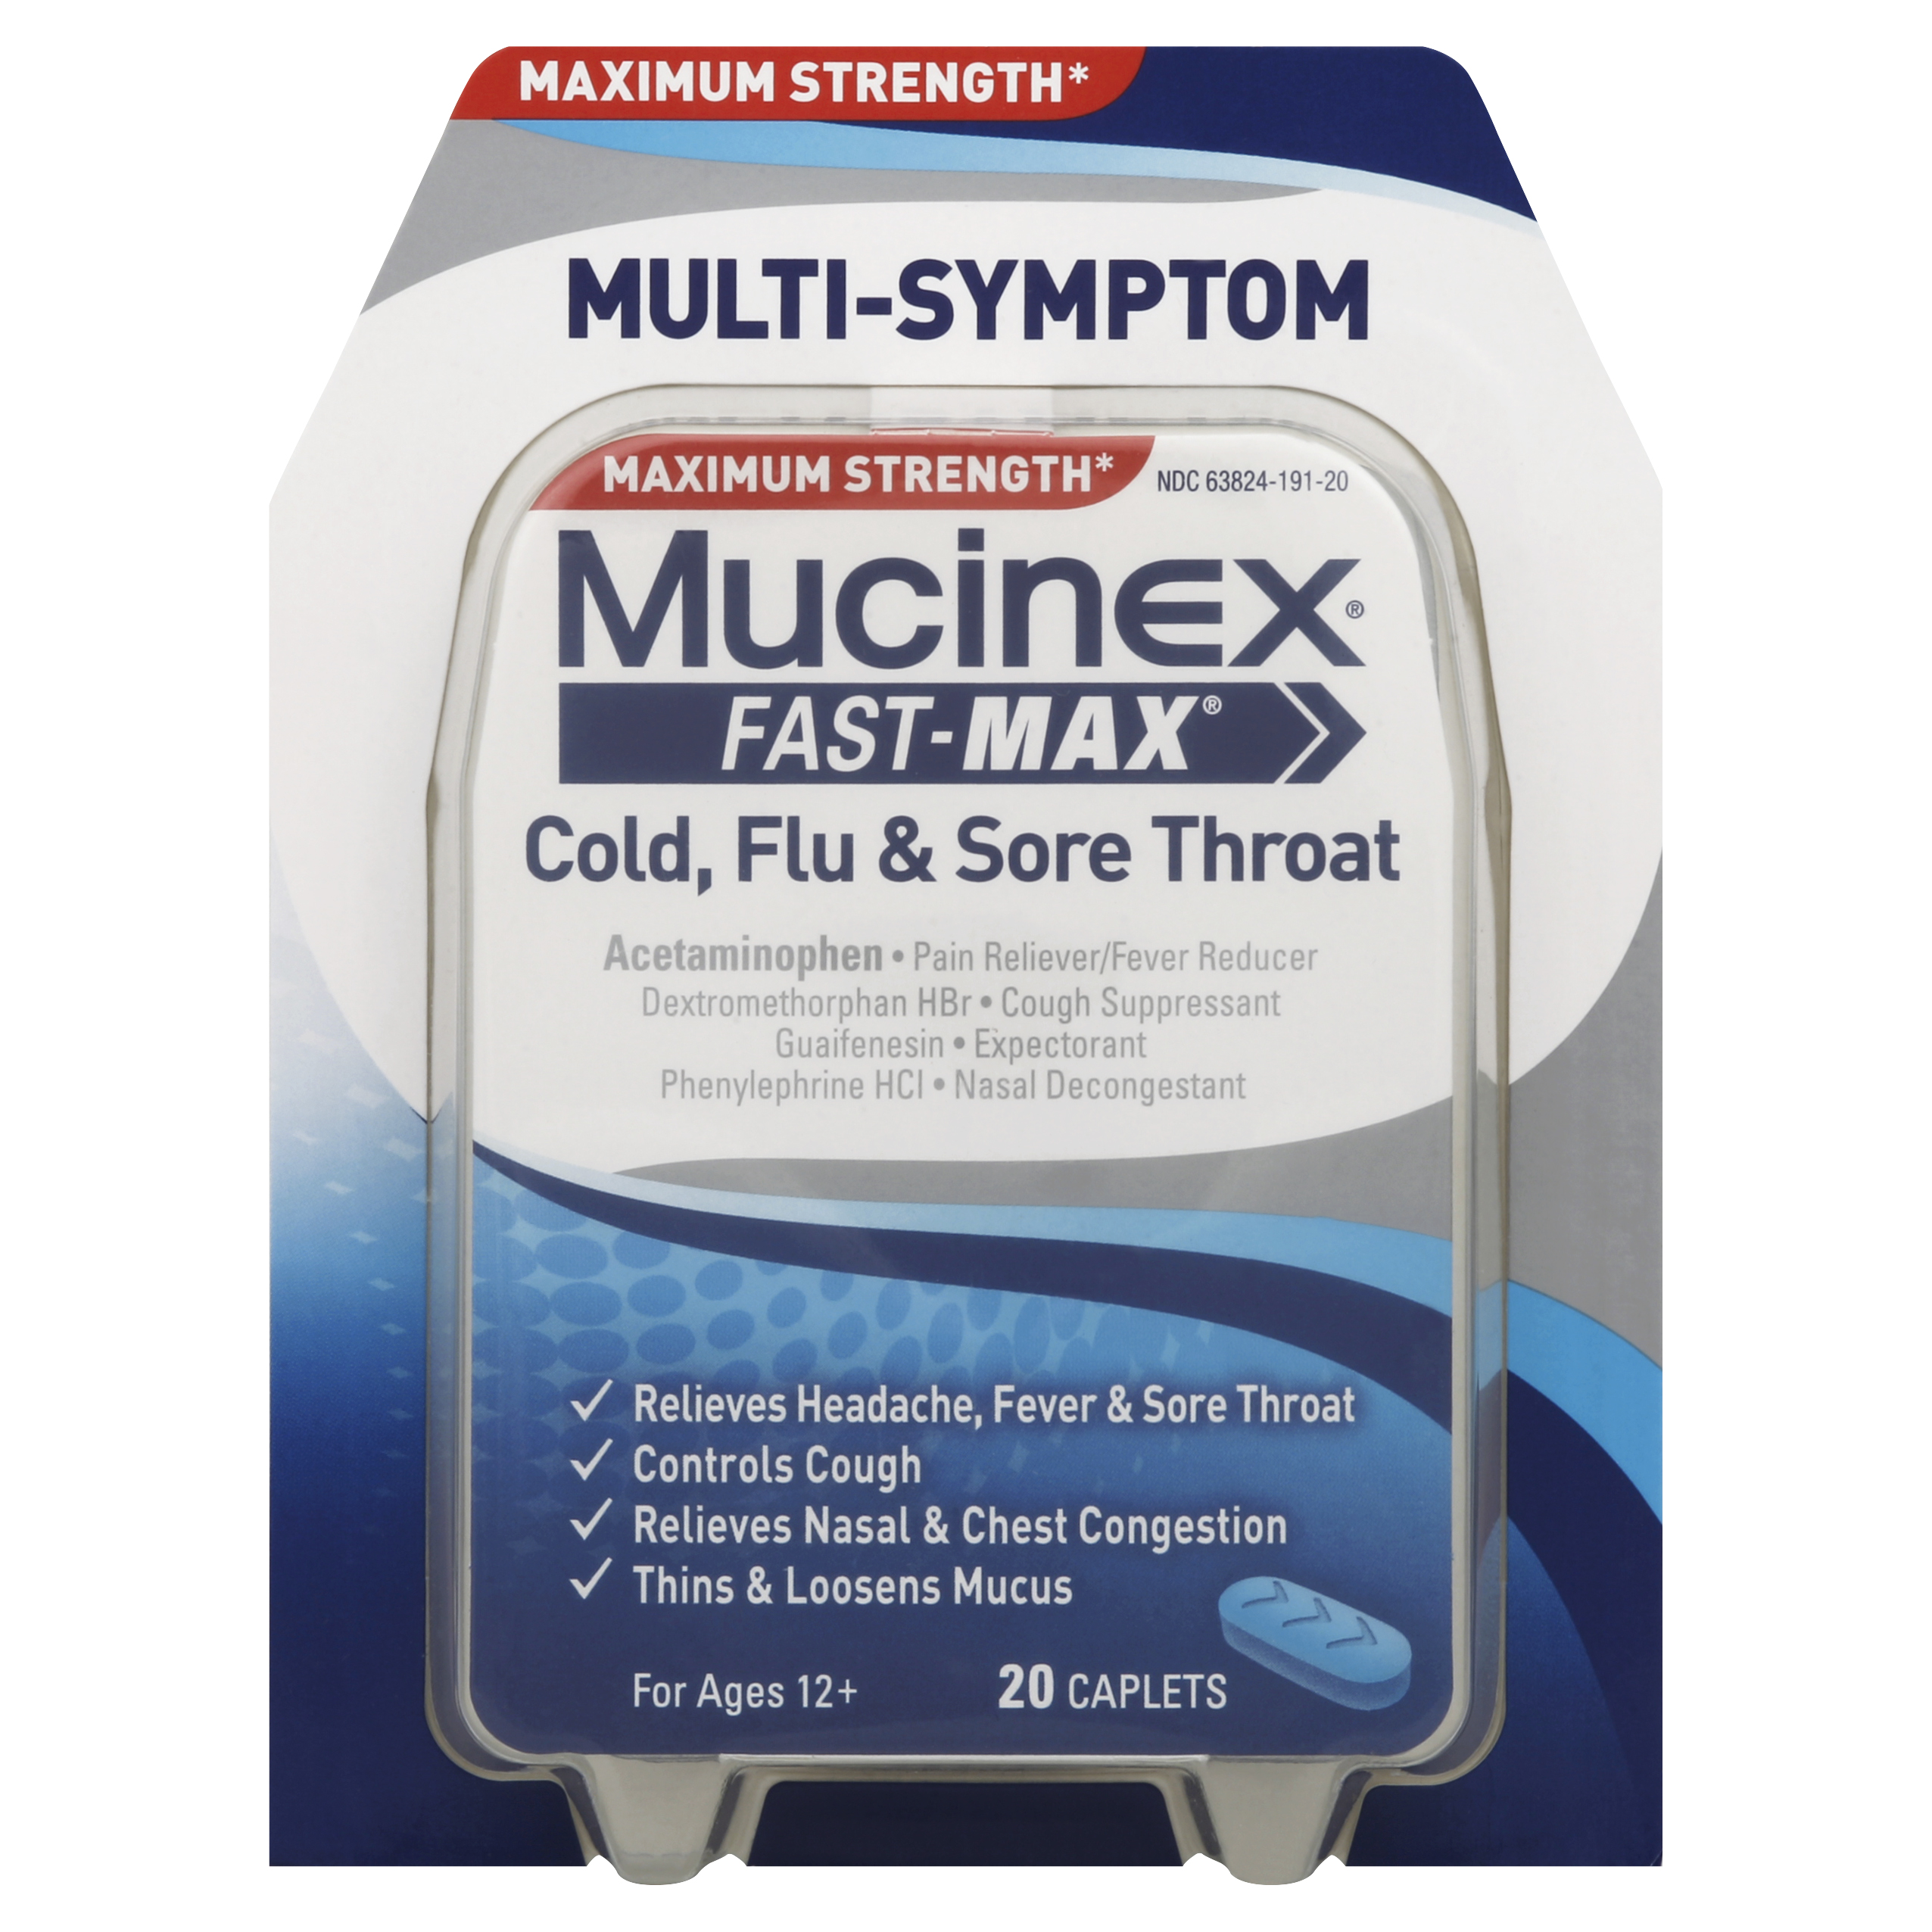 Mucinex Fast-Max Adult Cold, Flu and Sore Throat Caplets, 20 Count